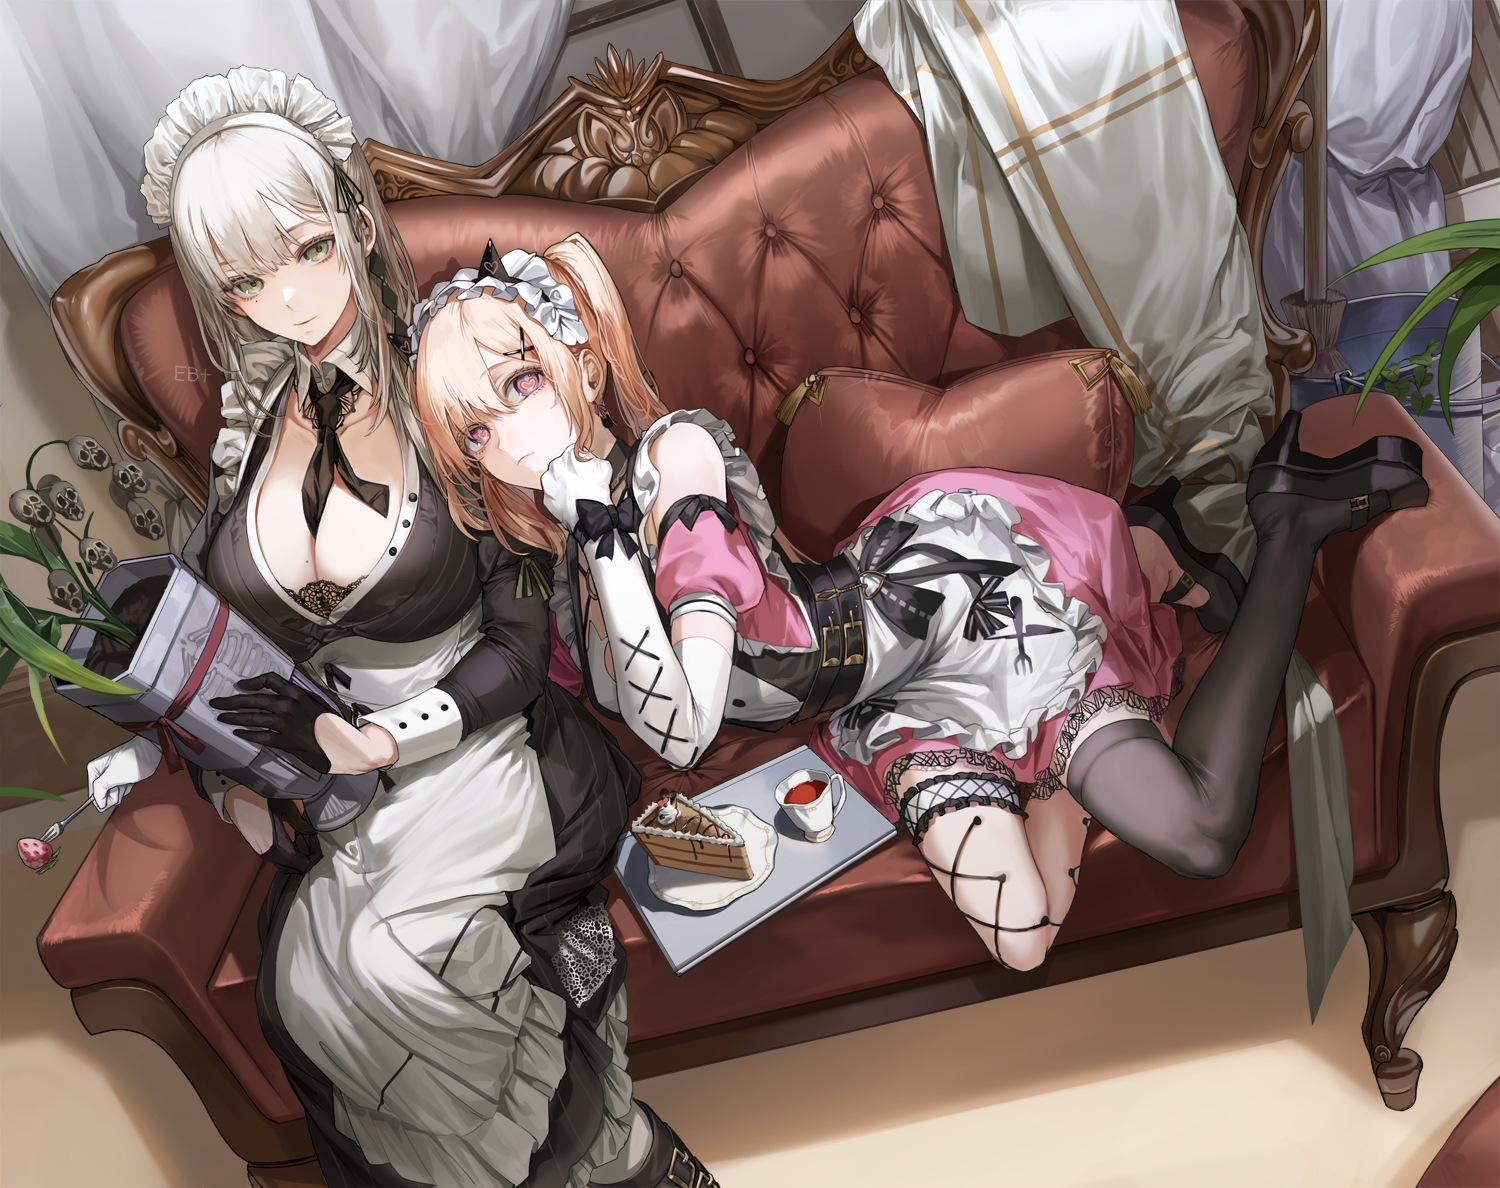 2girls brown_hair cake couch drink food gloves gray_hair green_eyes headband horns kim_eb long_hair maid original signed skull twintails